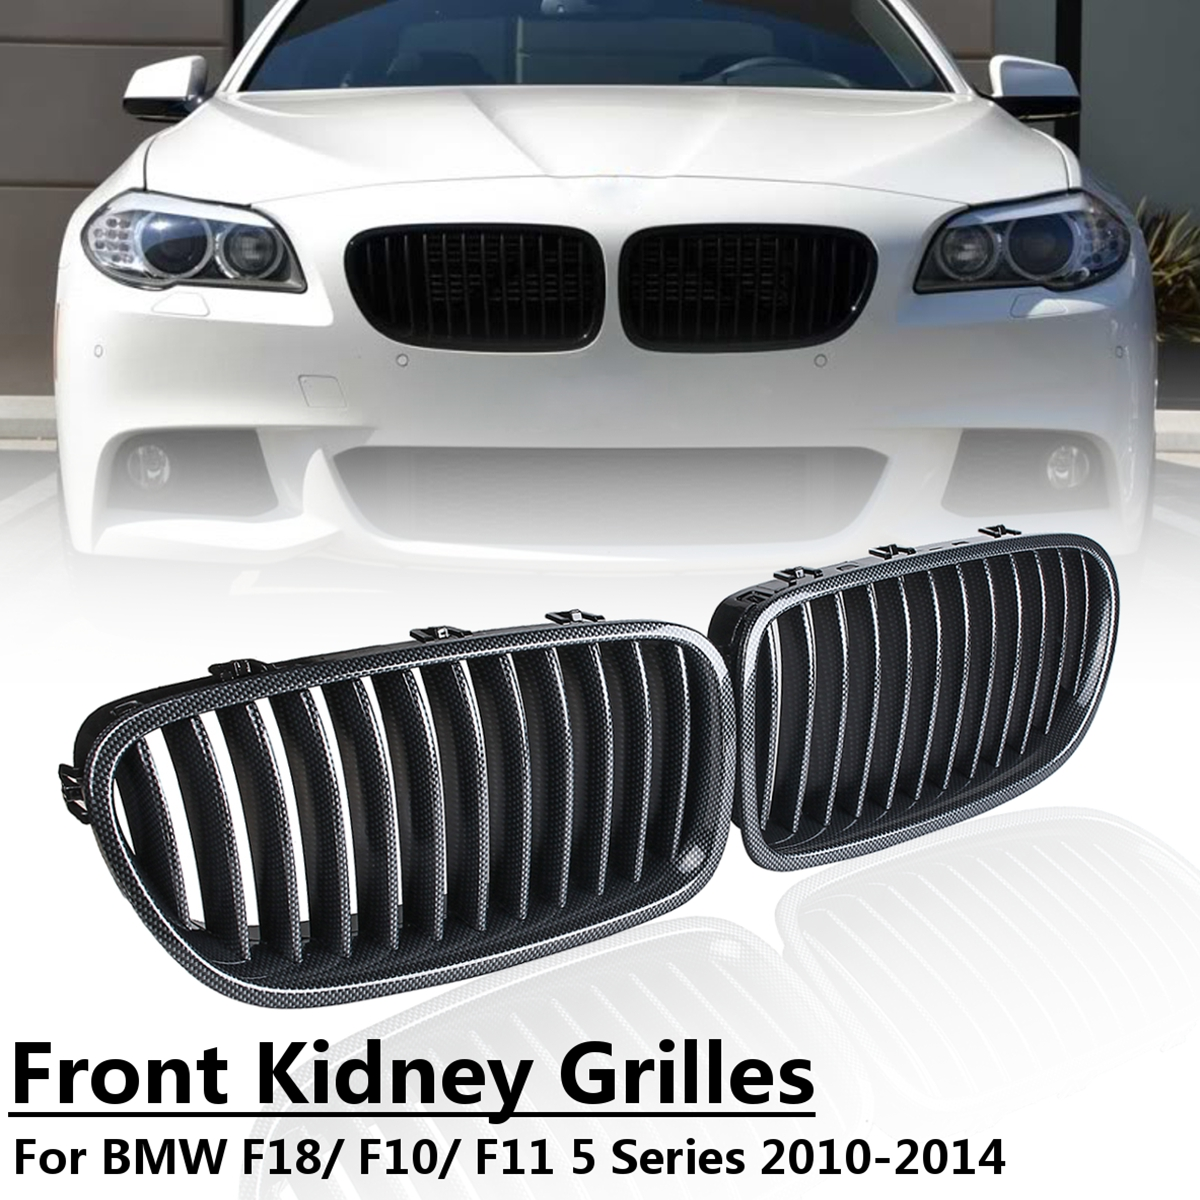 1 Pair Kidney Replacement Grille Carbon Fiber Front Kidney Grill Grilles for BMW F18 F10 F11 5 Series 2011 2012 2013 2014 2pcs front grille bumper hood grill grilles automobile front kidney grille for bmw 1 series f20 2012 2014 glossy black